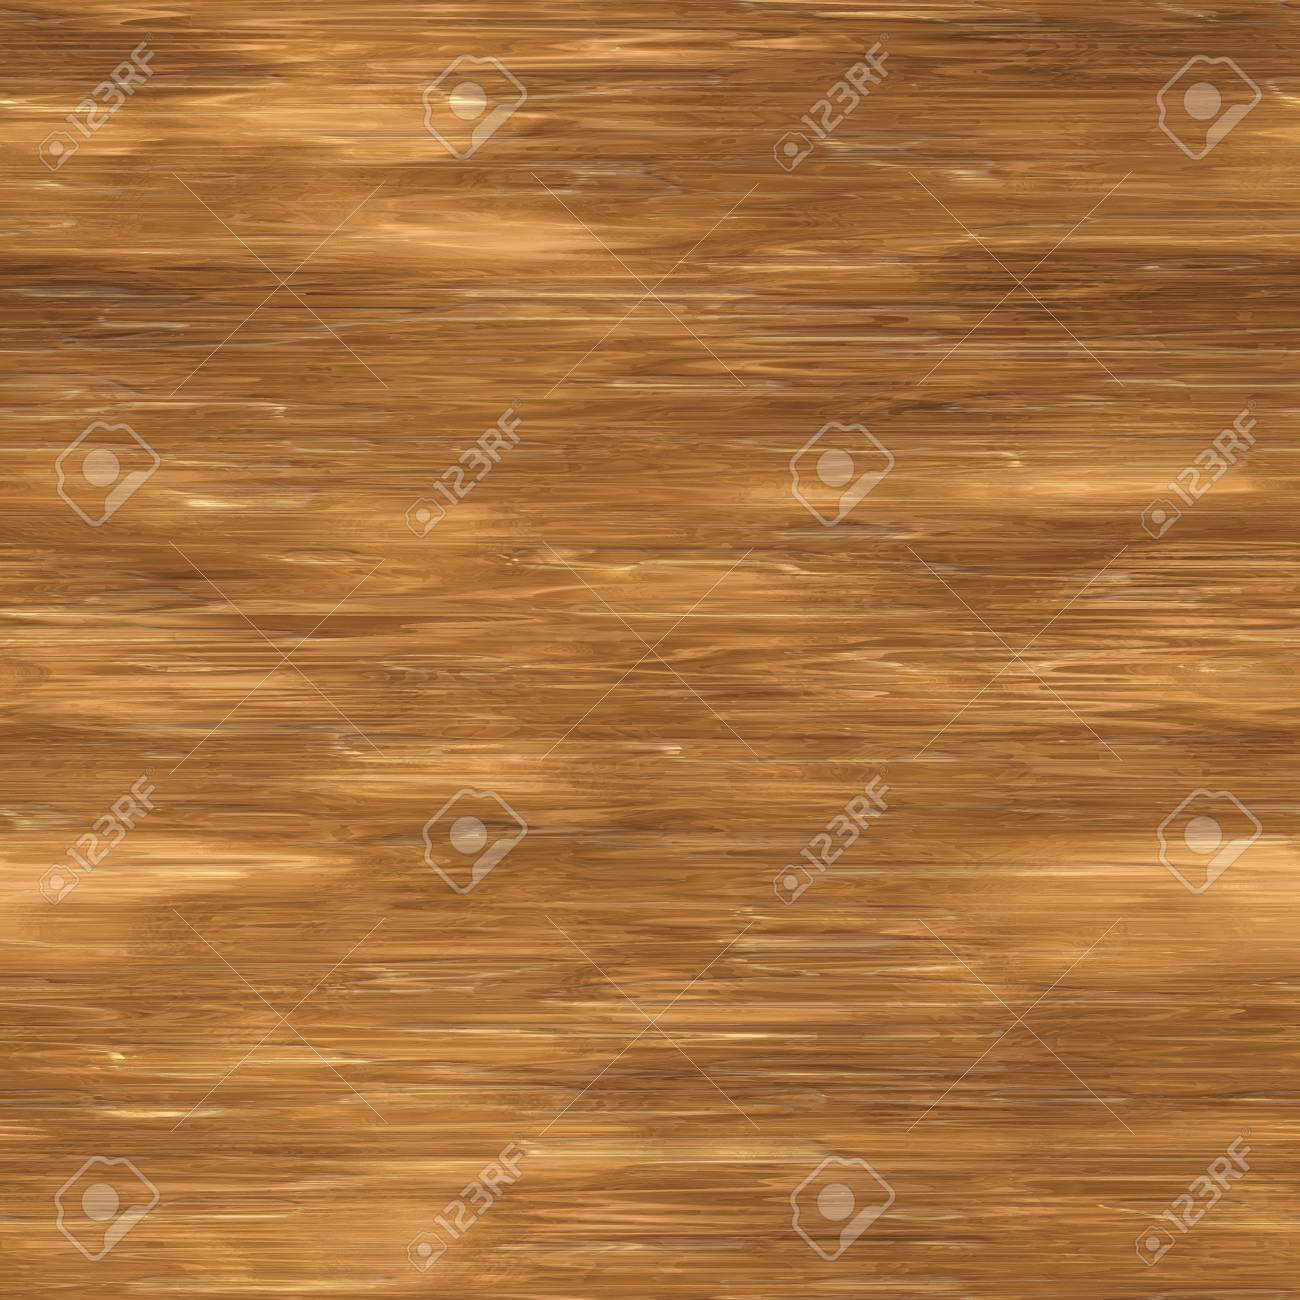 Large Seamless Grainy Wood Texture Background Stock Photo Picture